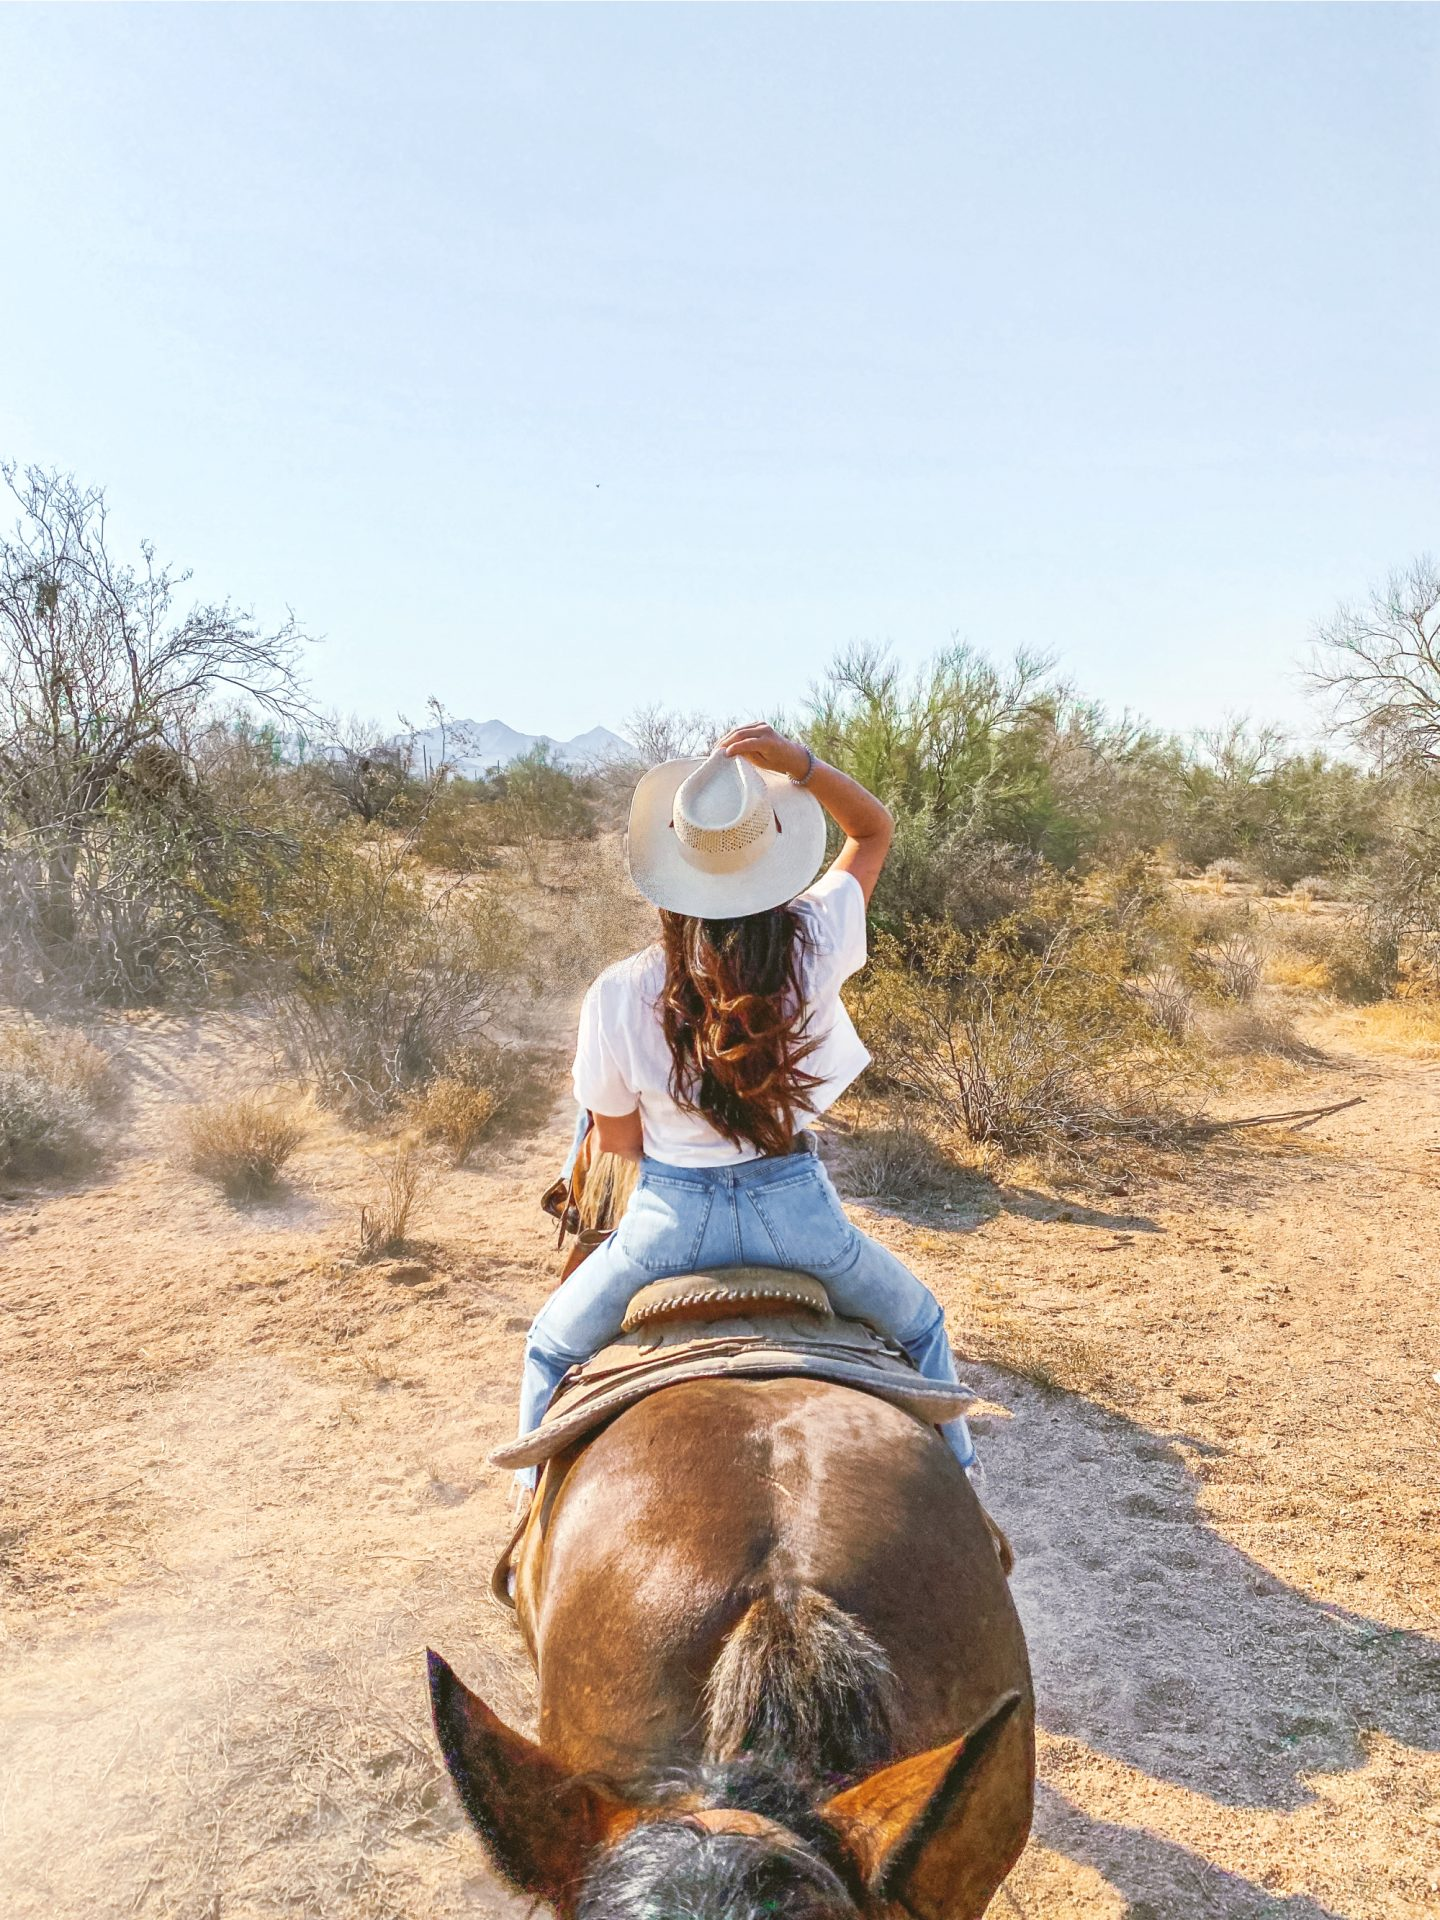 what to do in scottsdale Arizona, ultimate travel guide scottsdale Arizona, traveling, scottsdale, Macdonalds ranch, cactus, dessert, horseback riding, cowgirl, horseback riding, things to do, Arizona, travel blogger, photography, ranch, guide to scottsdale